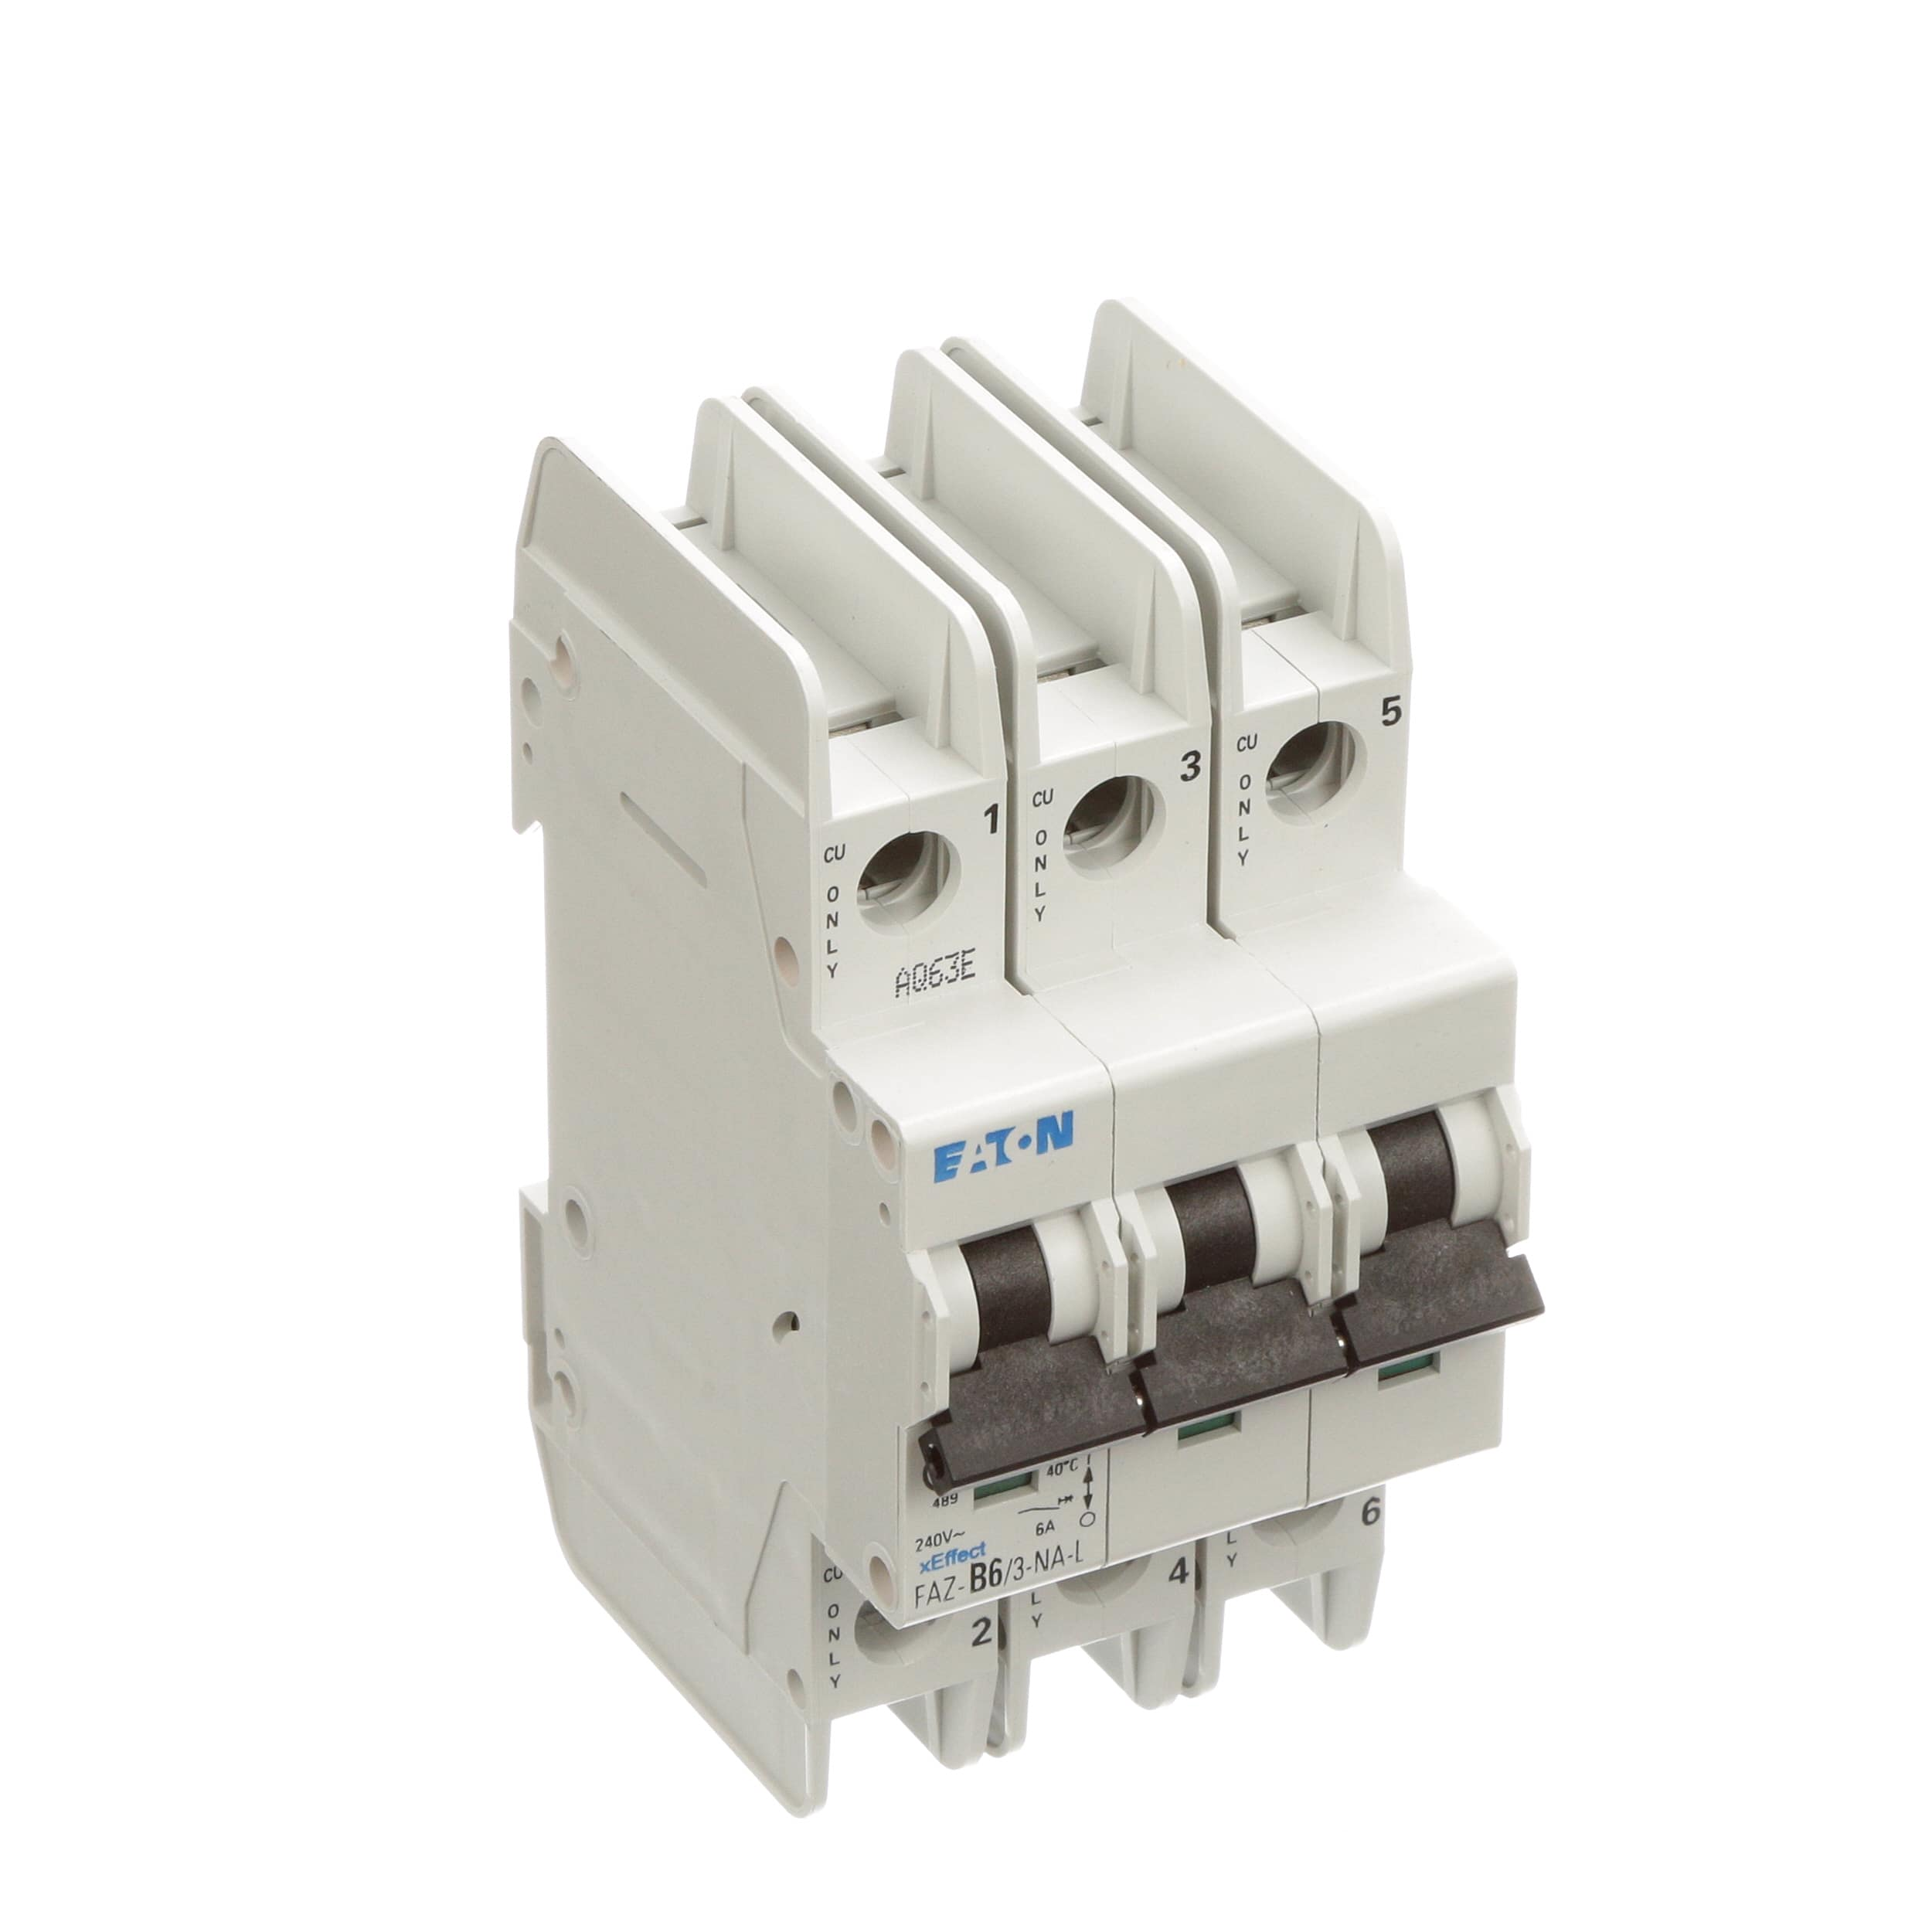 Eaton Cutler Hammer Faz B6 3 Na L Circuit Breaker B Mcb Is A Device Designed To Protect Circuit39s Curve Pole 6a Ul489 Branch 240vac Scr Terms Allied Electronics